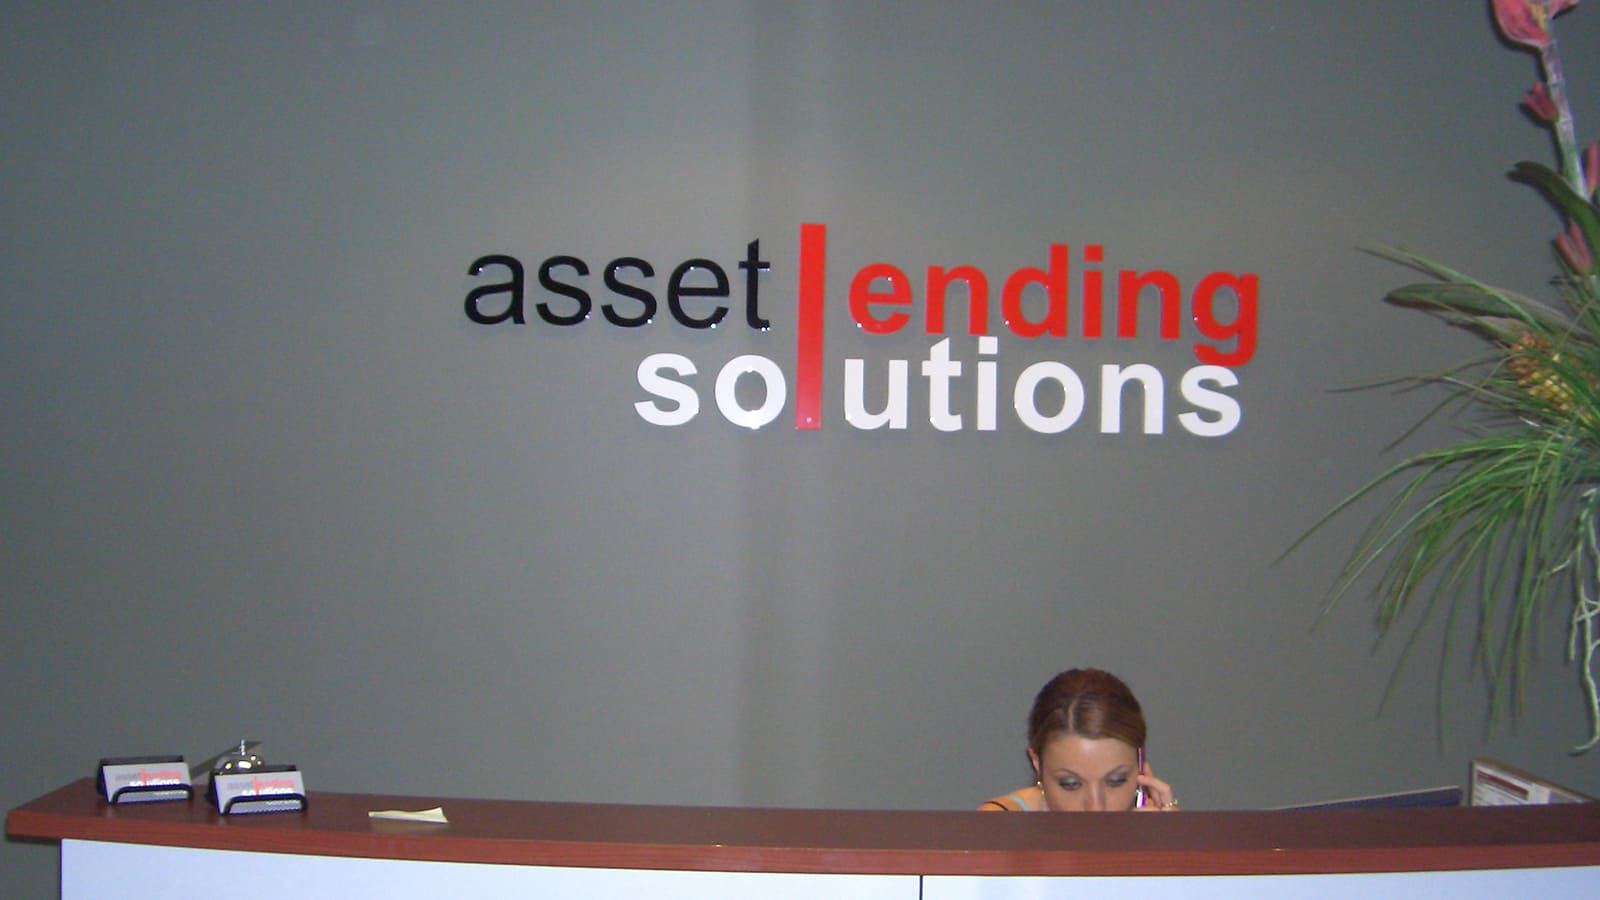 reception-asset-lending-solutions